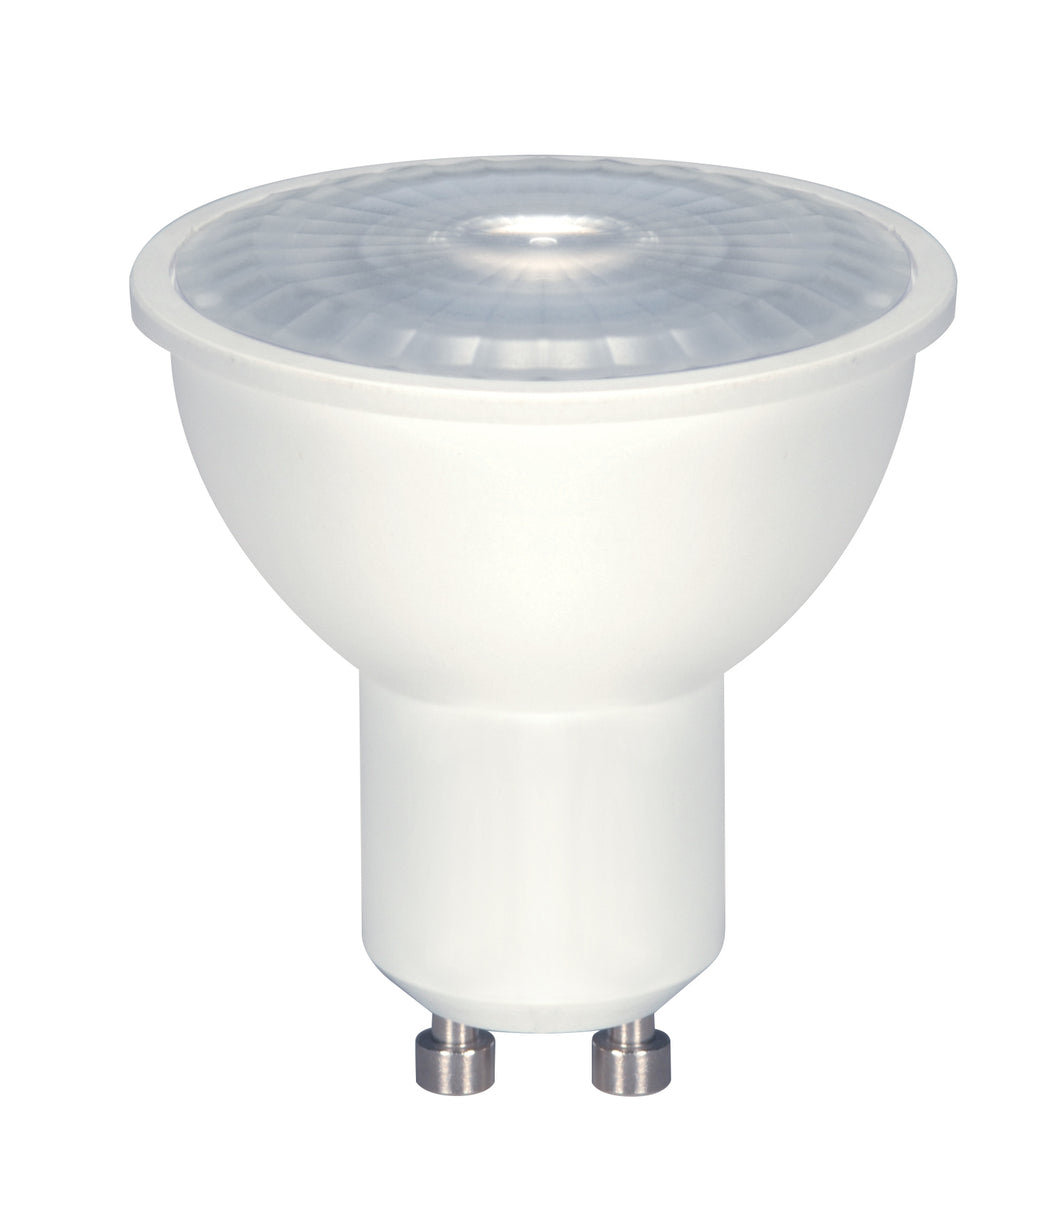 6.5MR16 LED BULB 40 BEAM 3000K 120V GU10 - trinitylightingetc-com